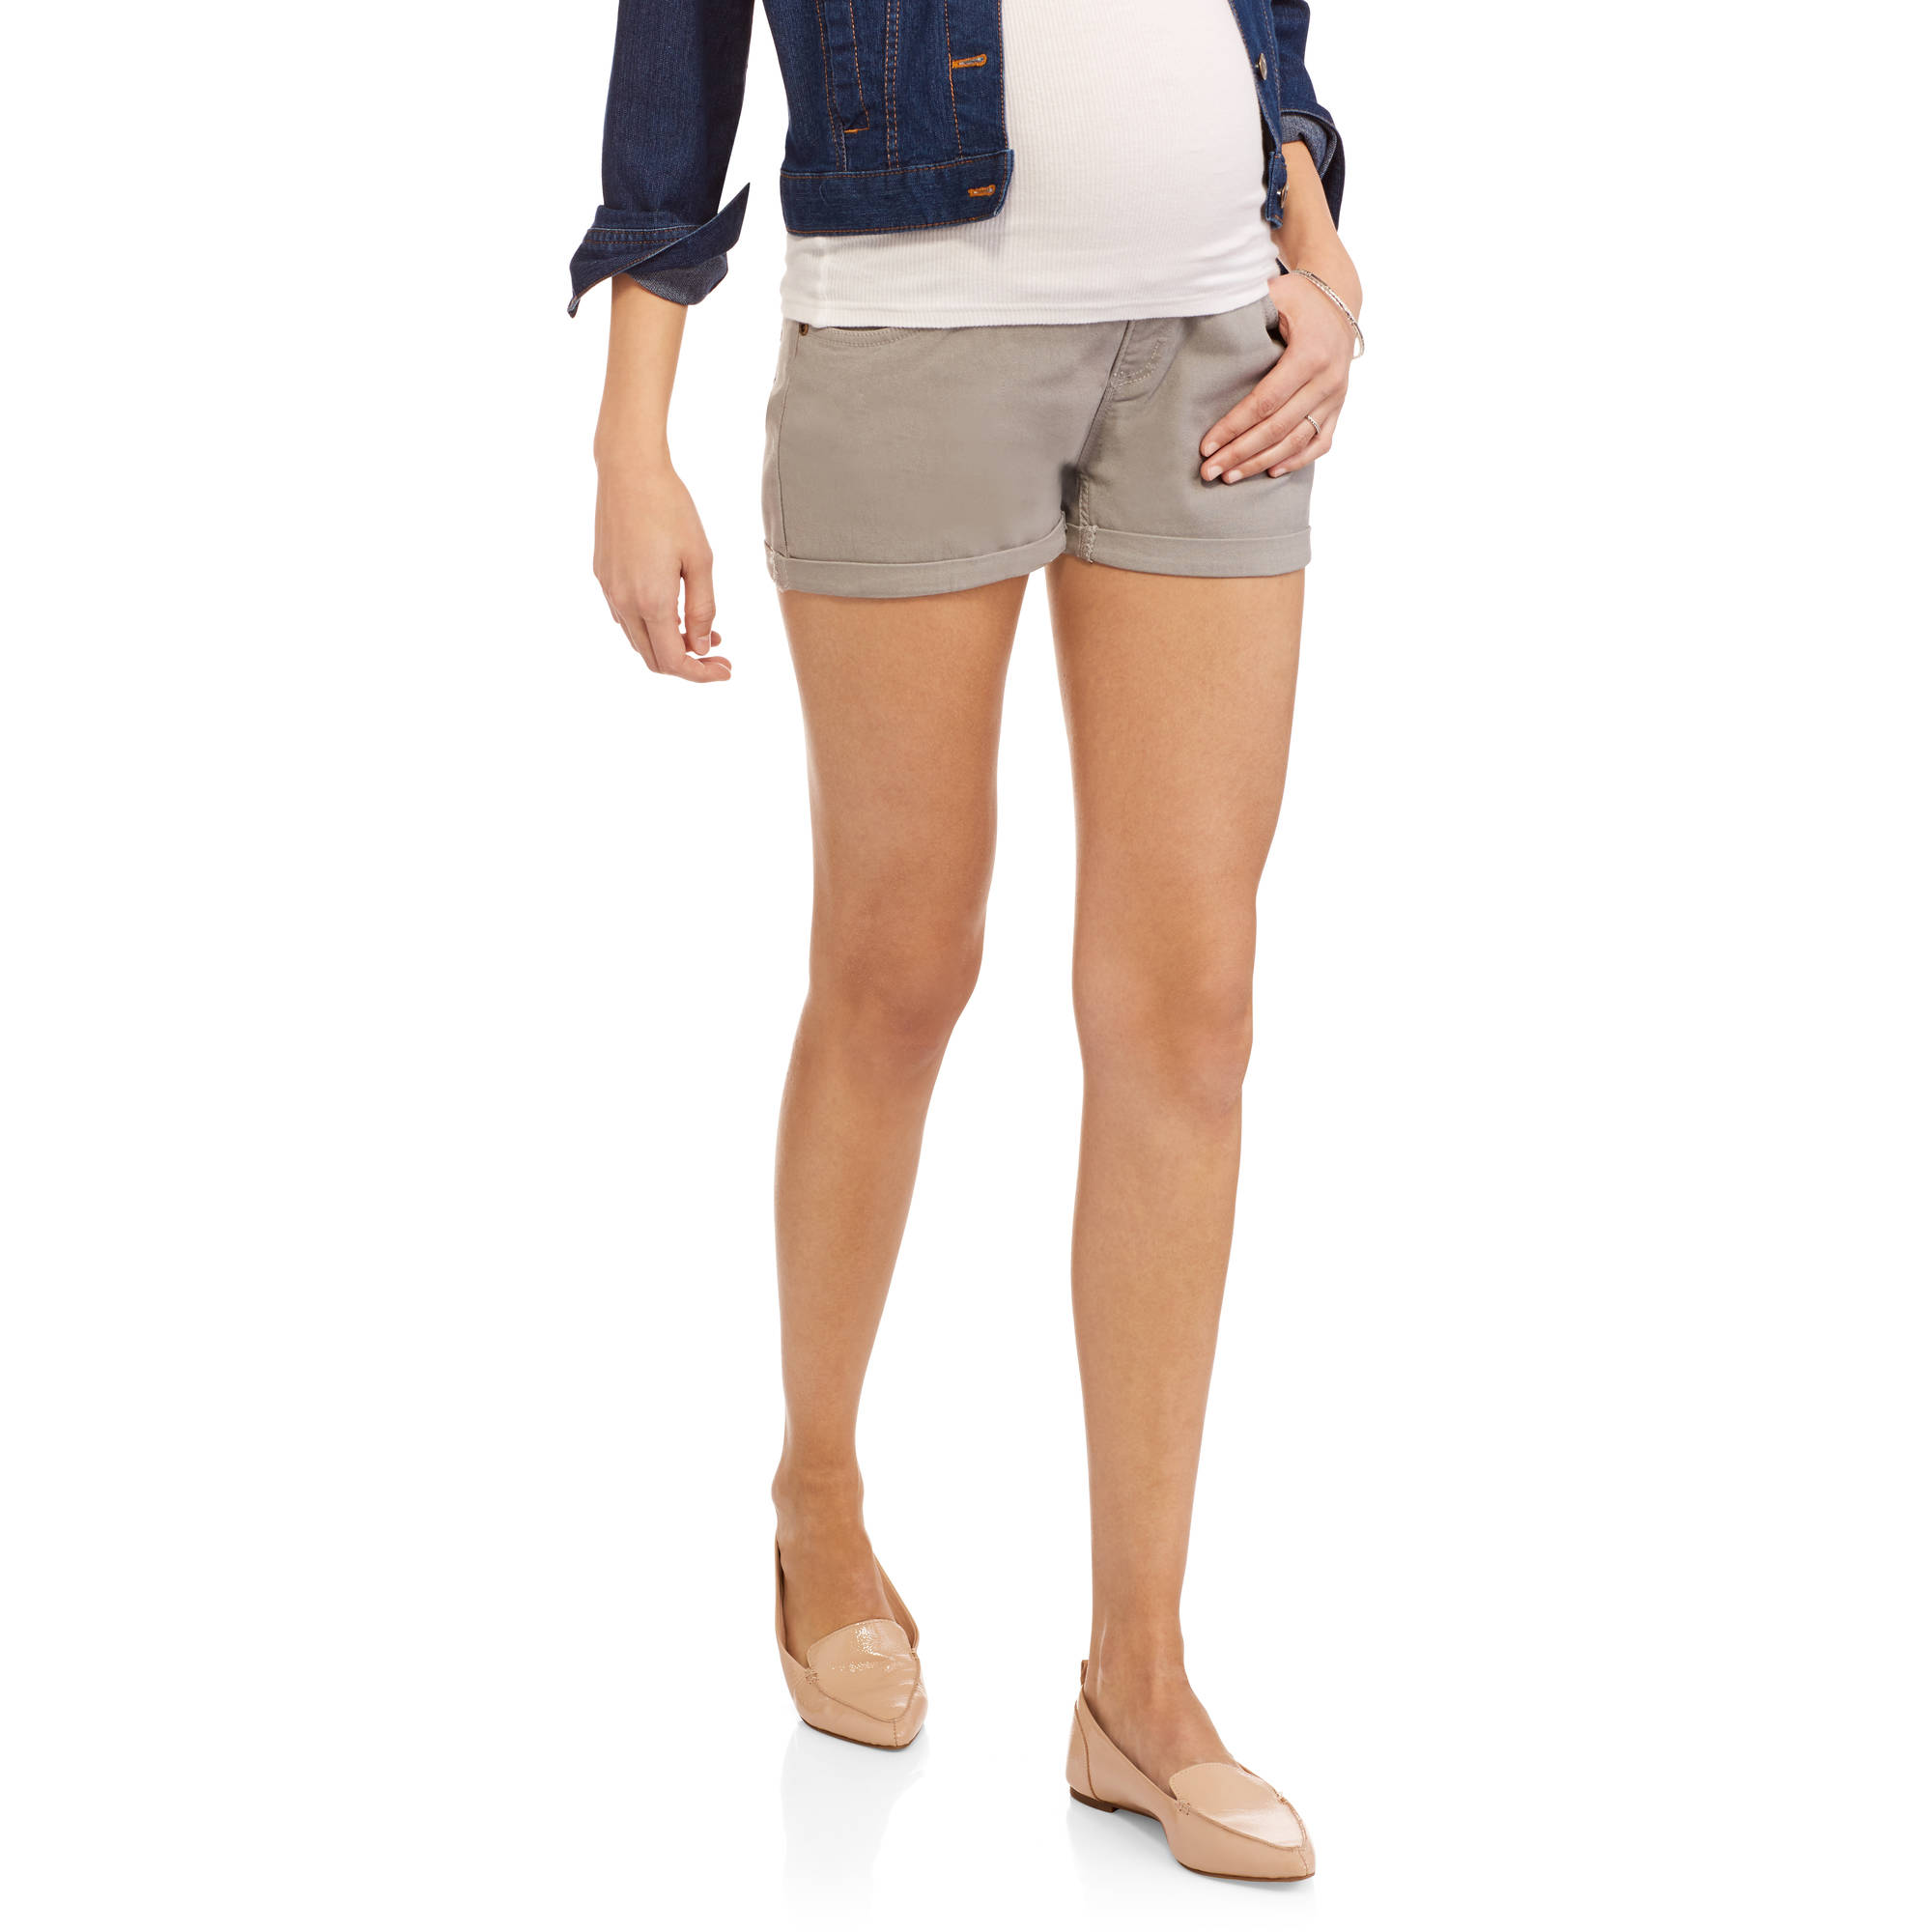 Oh! Mamma Maternity Full Coverage Stretch Twill Short with Embroidered Back Pockets